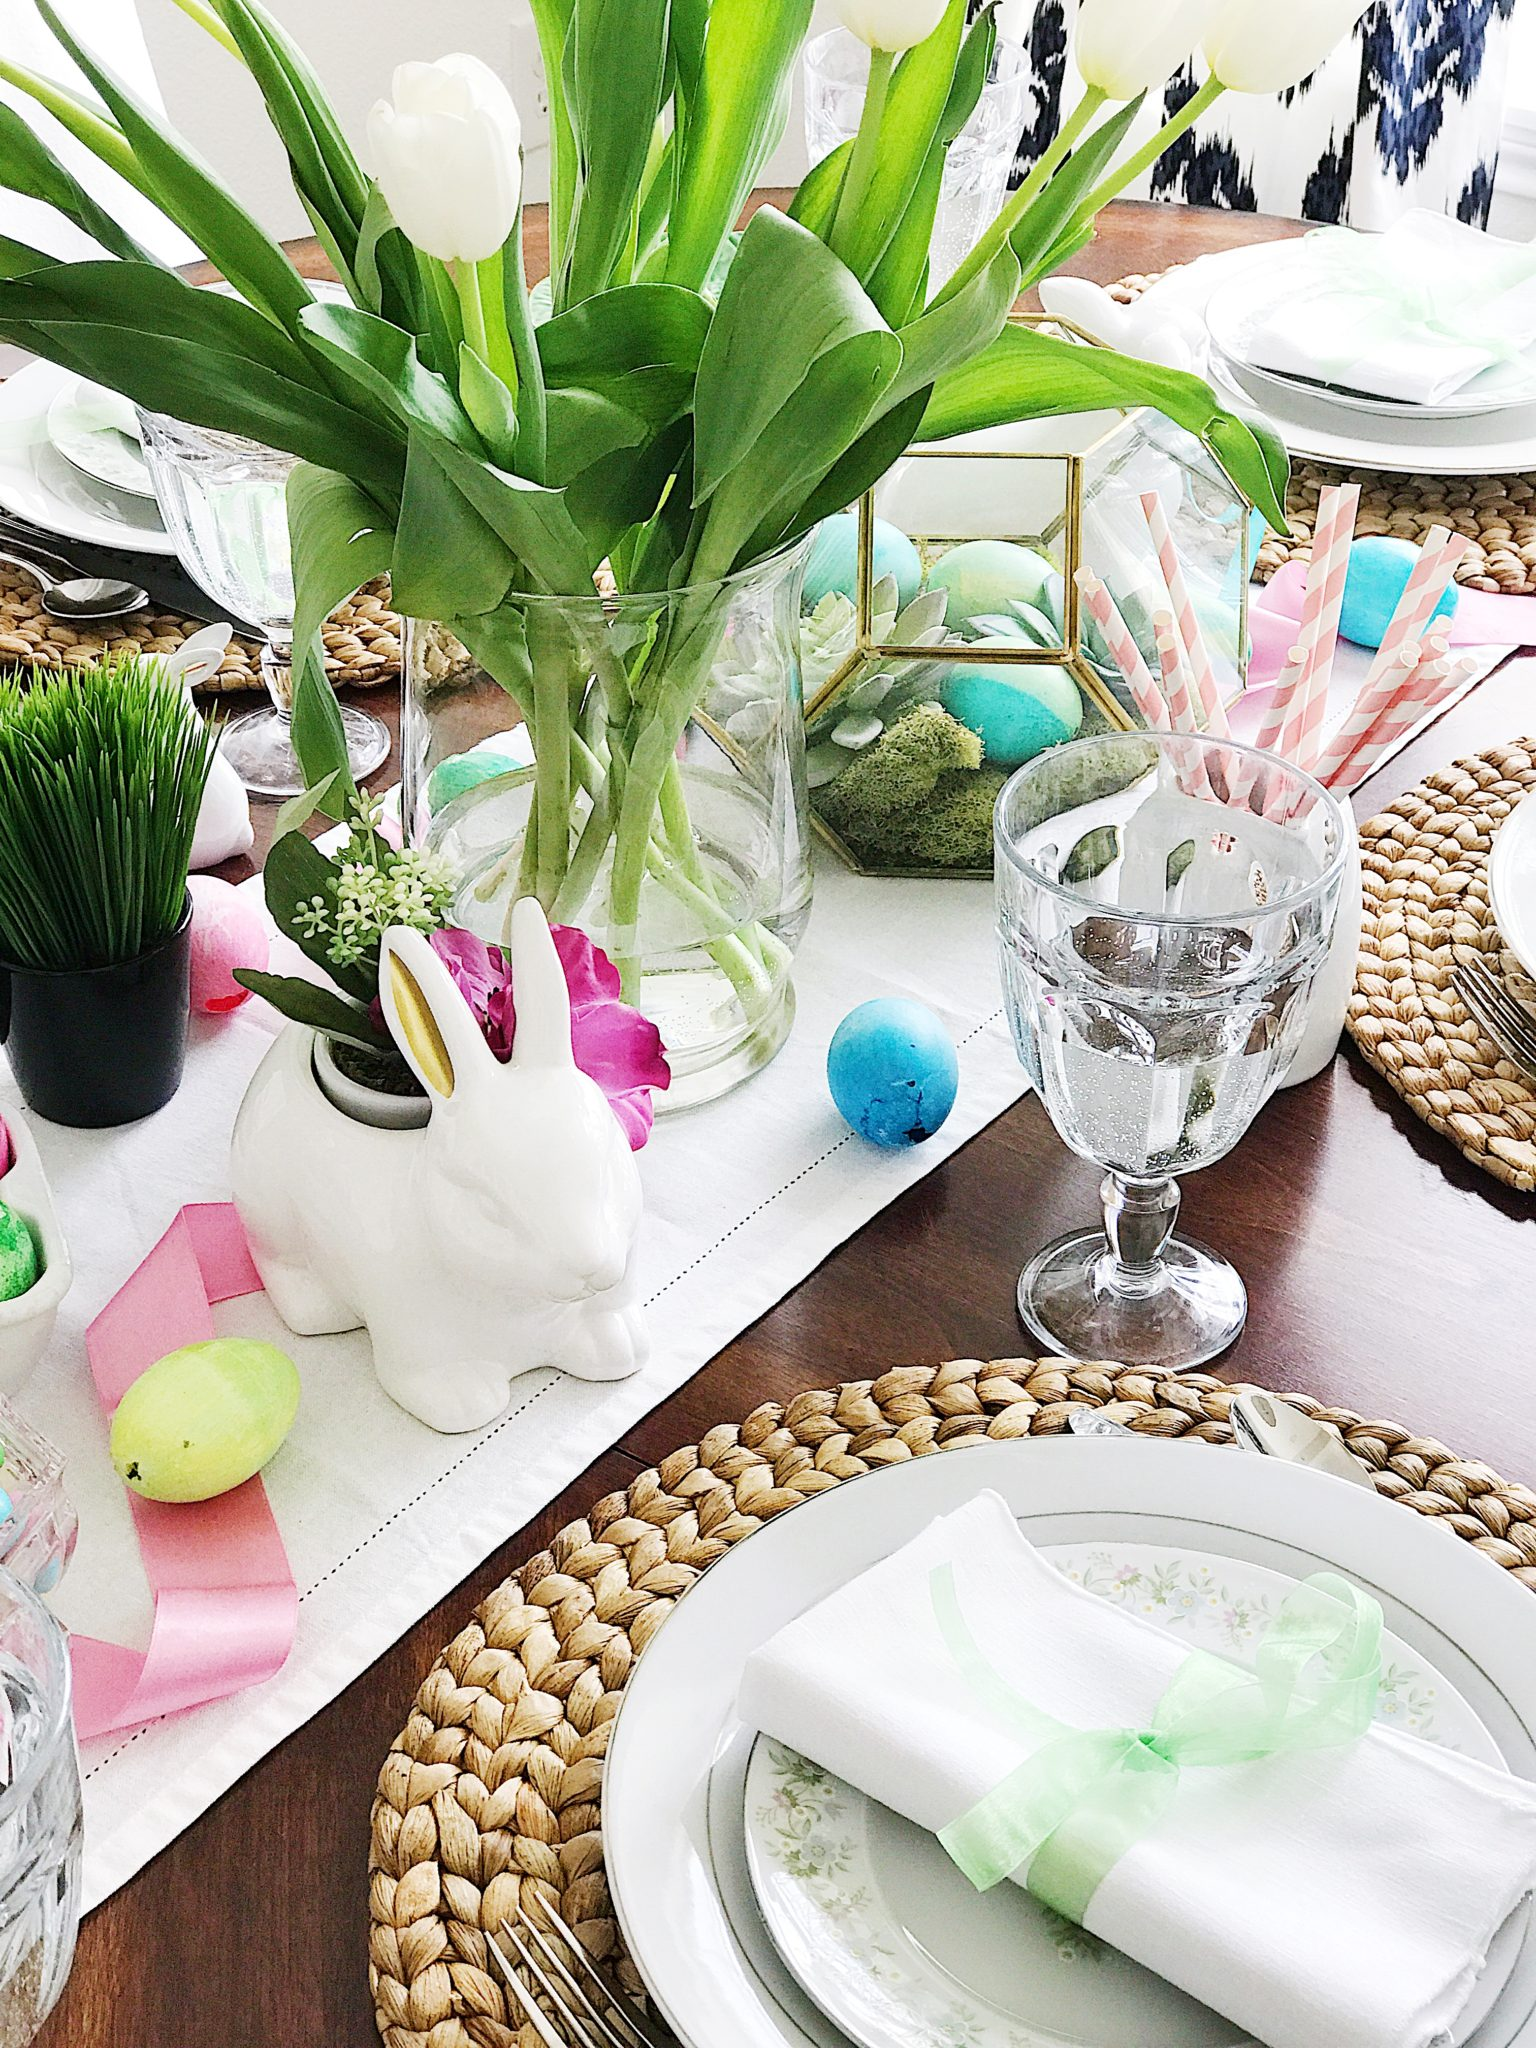 Simple Fresh and Pretty Easter and Springtime Table Setting Ideas : spring table setting ideas - pezcame.com